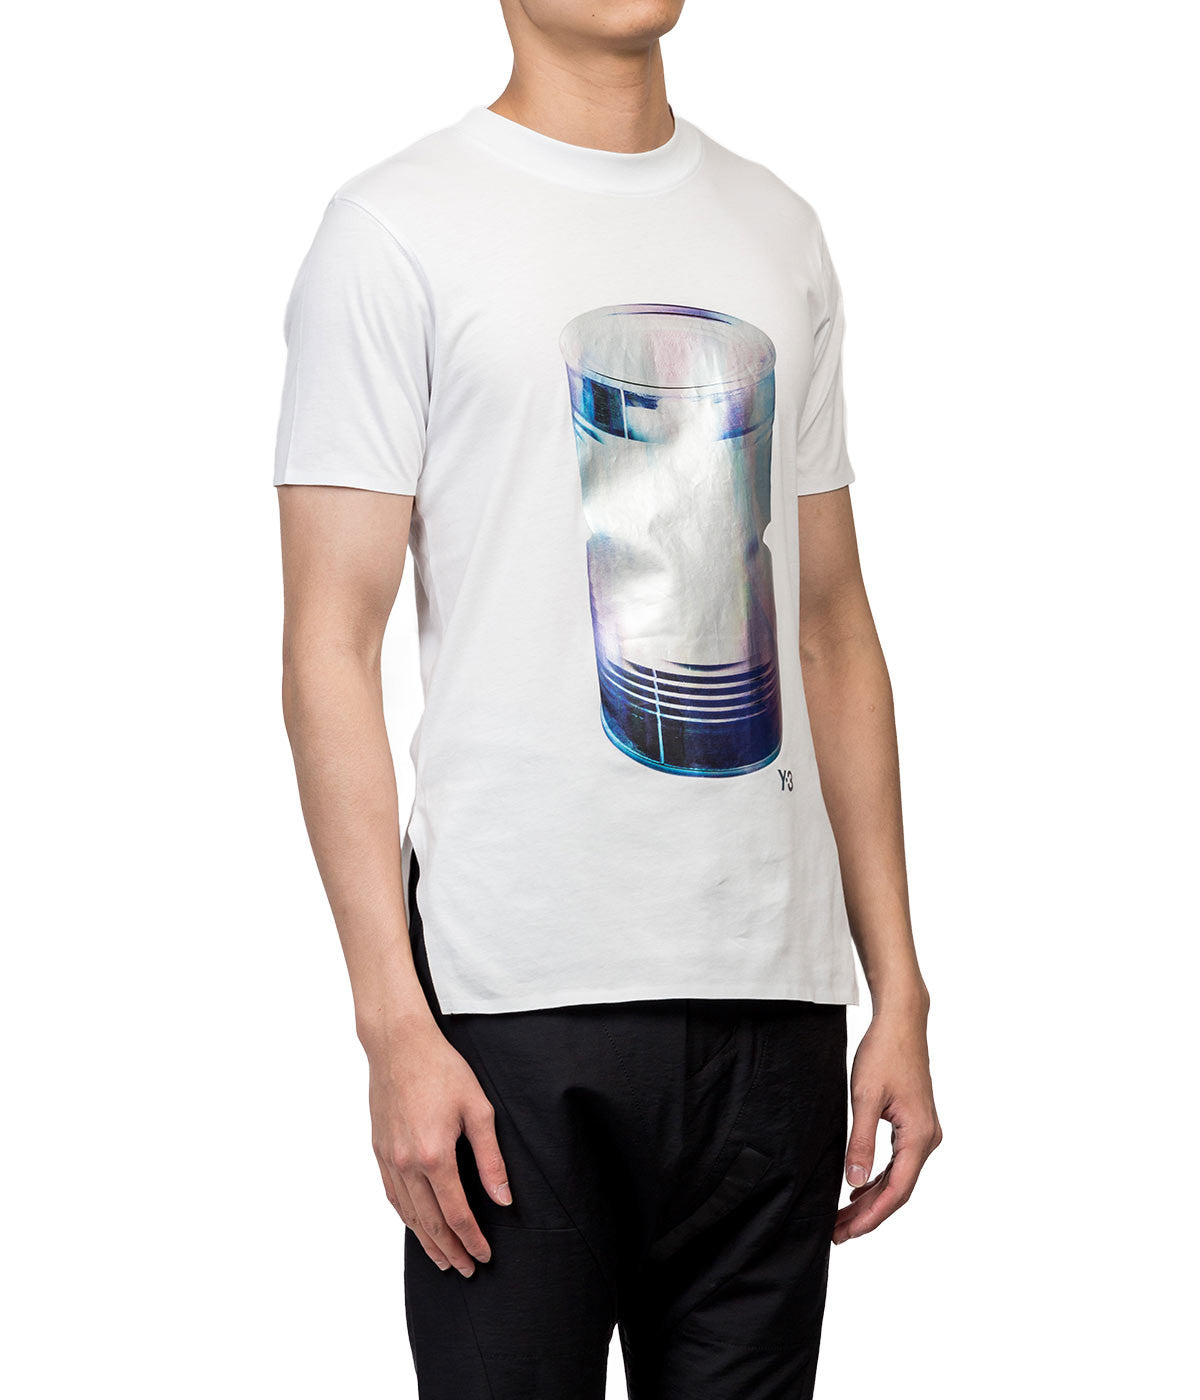 White Metallic Can Print T-shirt